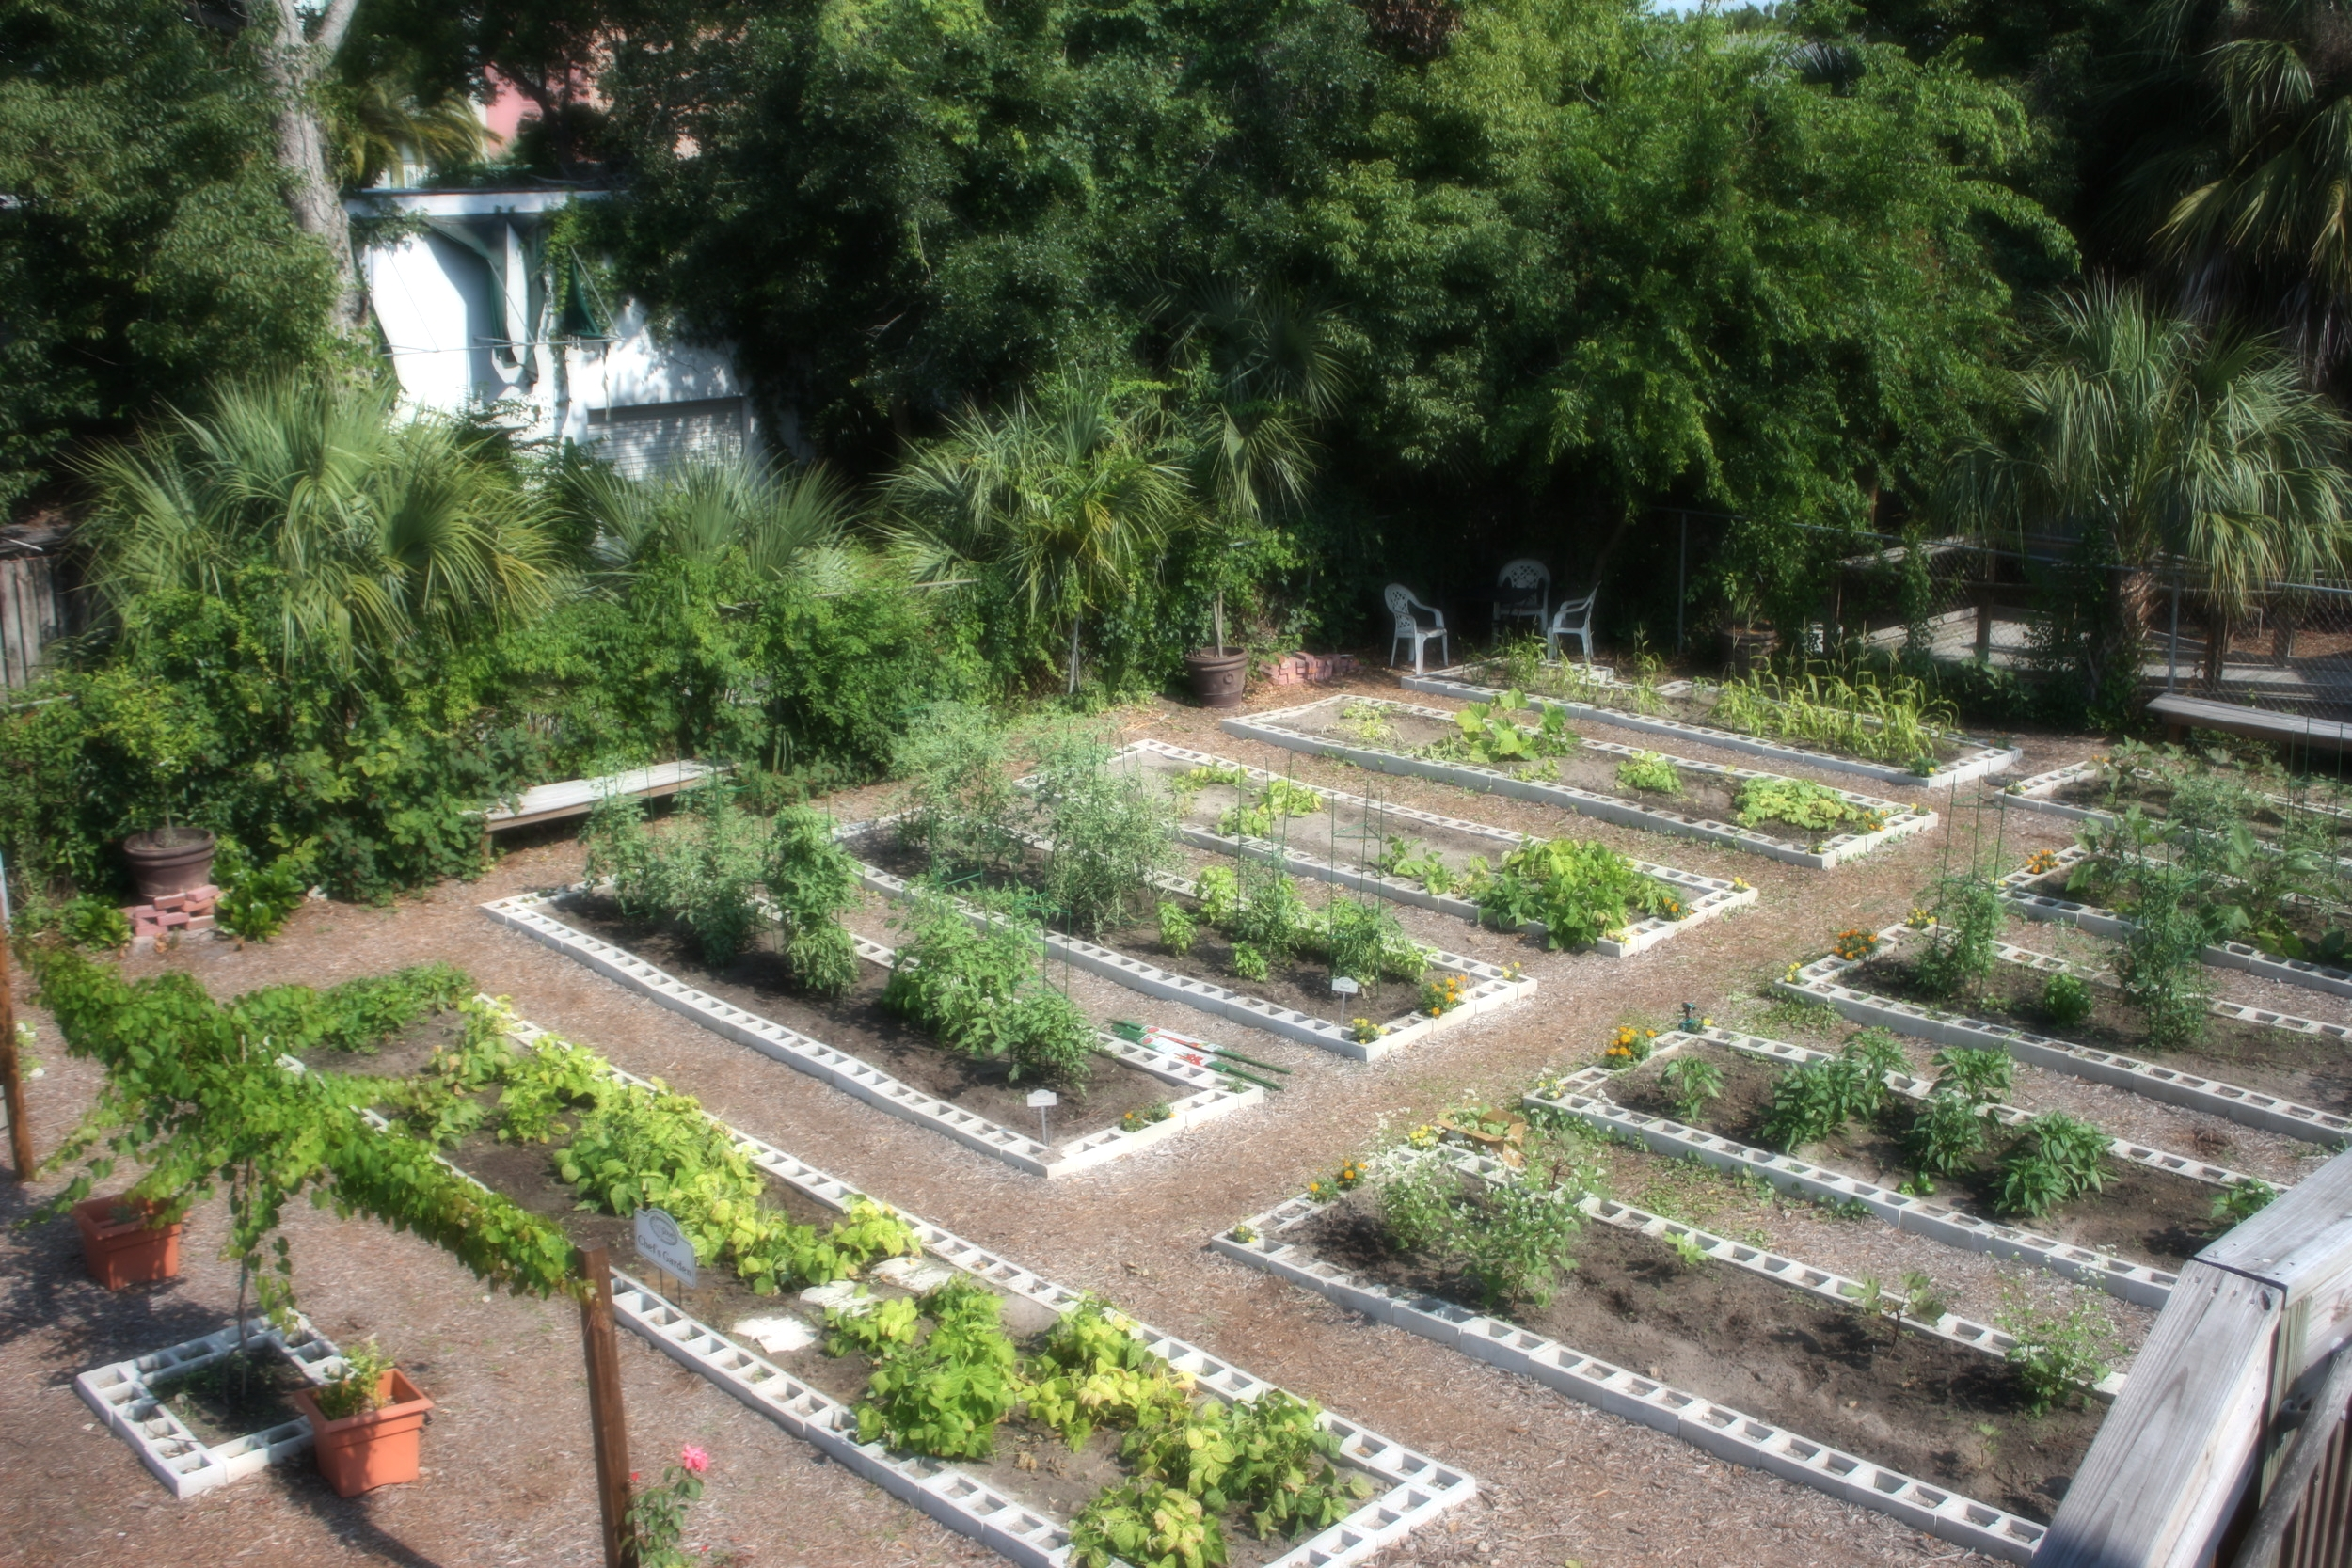 From muscadine vines and fig trees to sungold tomatoes and heirloom okra,the Chef's Garden at 29 South provides the kitchen with the freshest ingredients available.